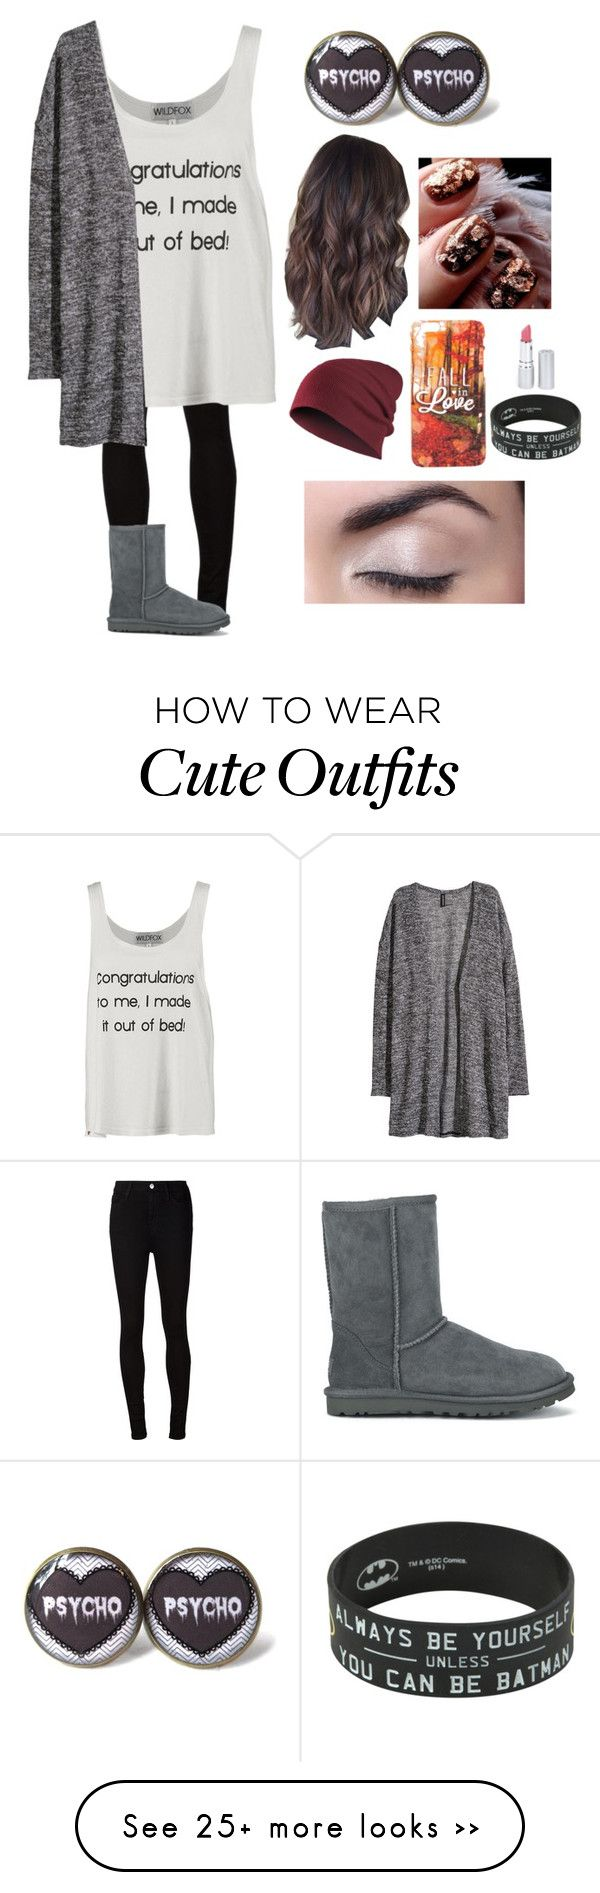 """Fall Outfit 1 <3"" by weirdlikethat on Polyvore featuring AG Adriano Goldschmied, Wildfox, H&M, HoneyBee Gardens and UGG Australia"